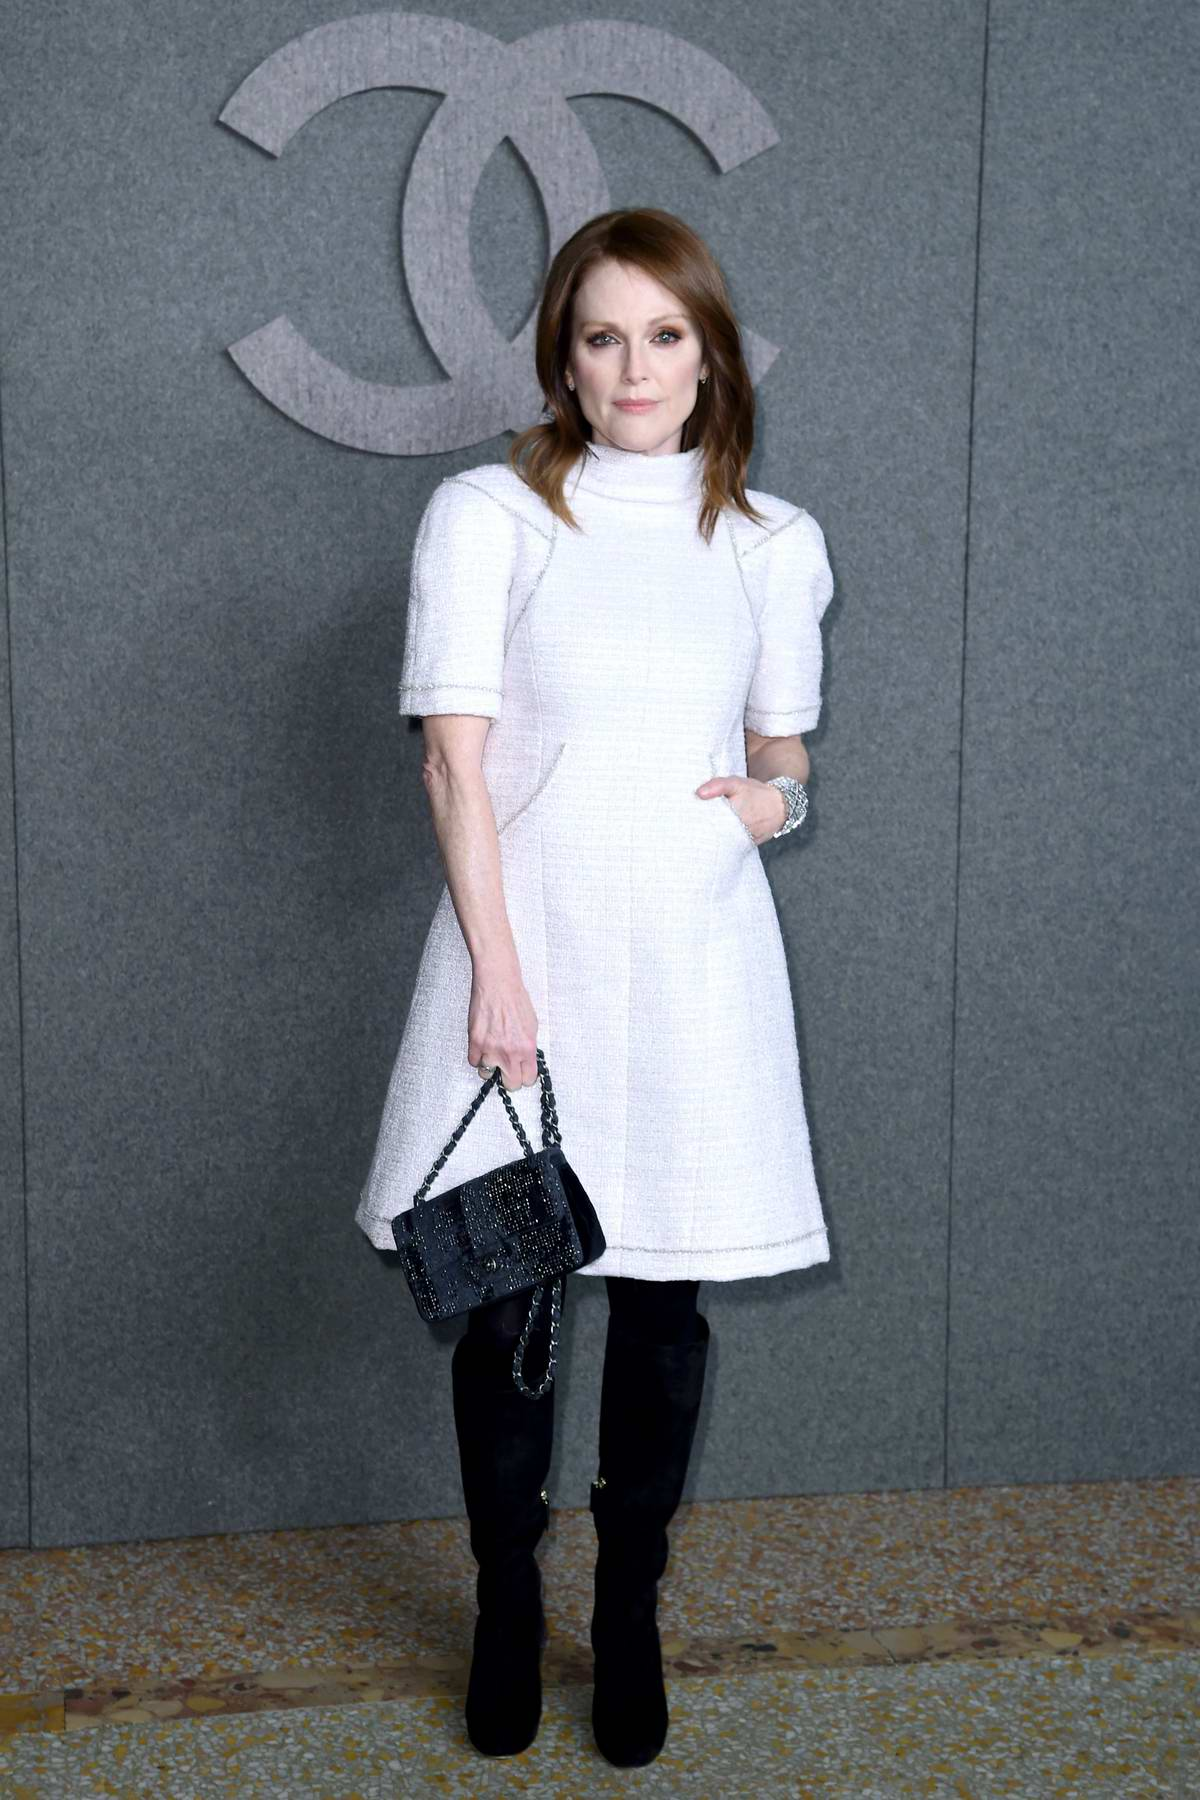 Julianne Moore attends the Chanel Metiers d'Art Pre-Fall 2019 Fashion Show in New York City